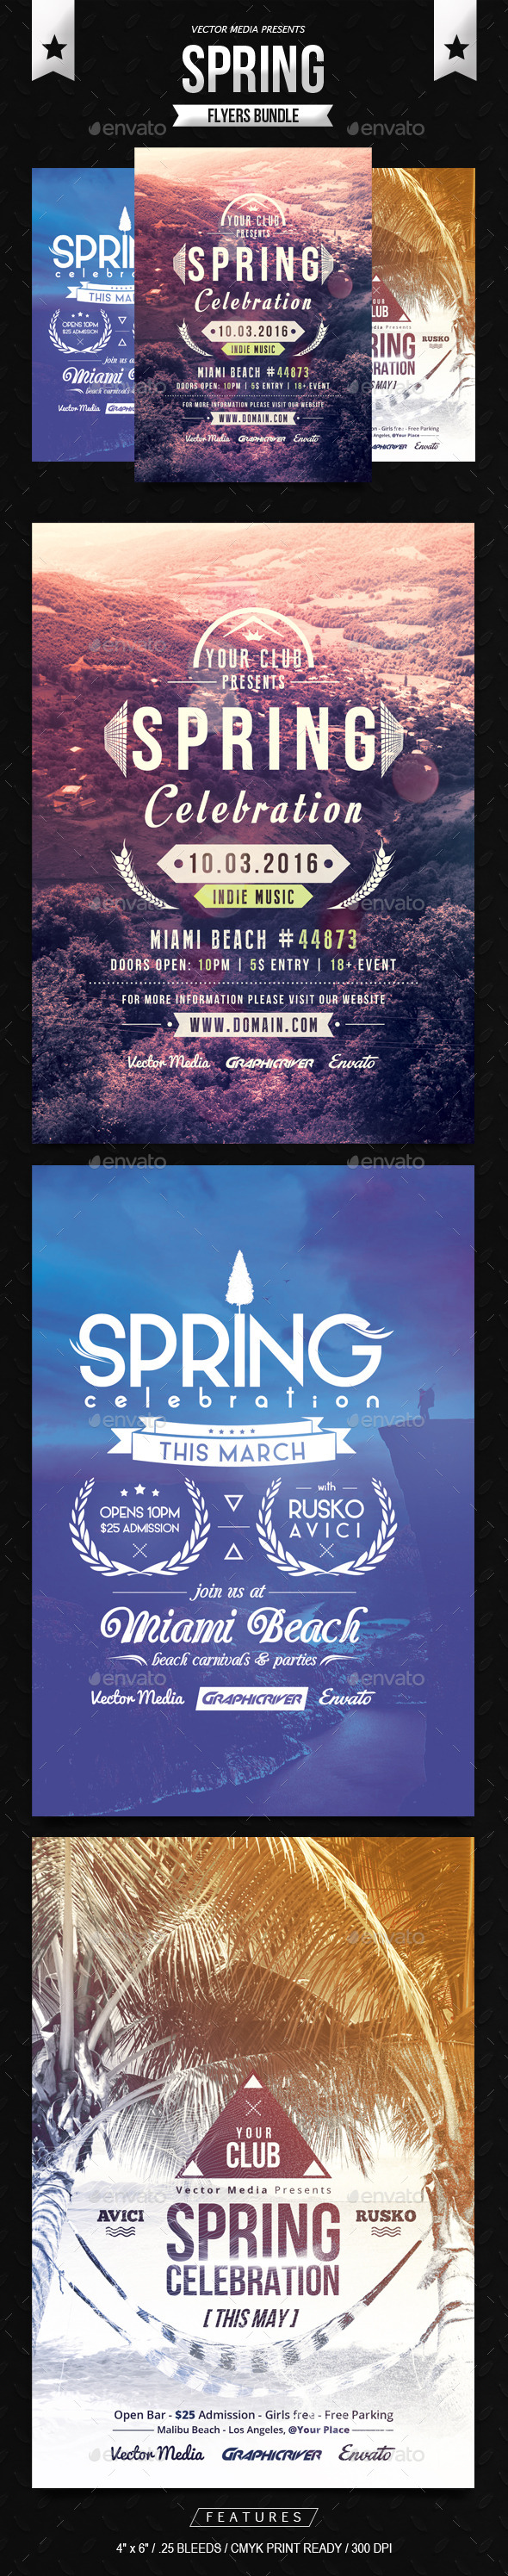 Spring - Flyers Bundle